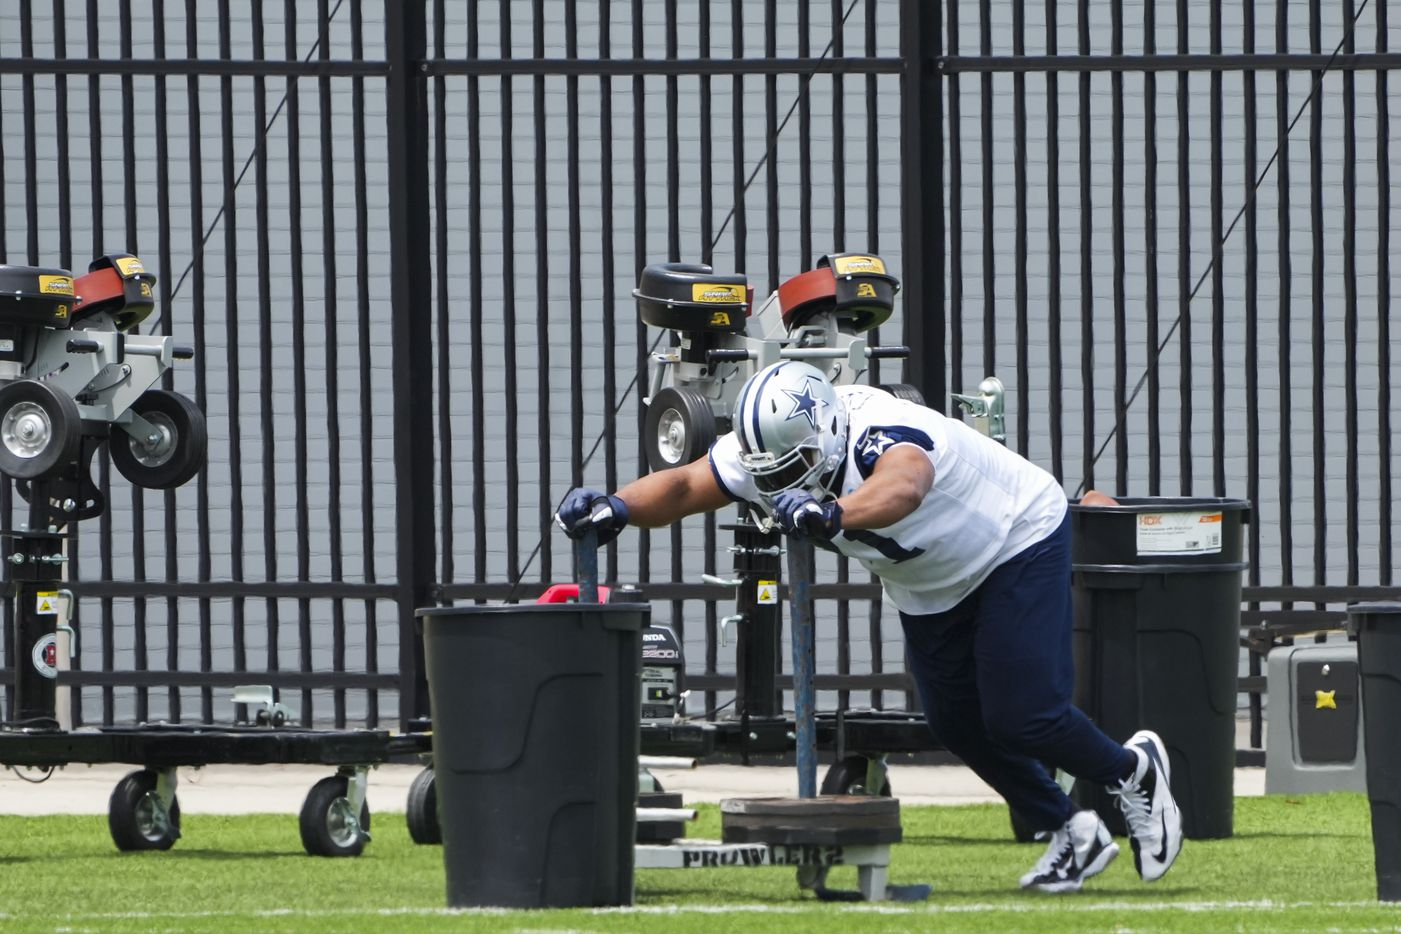 Dallas Cowboys tackle La'el Collins pushes a weighted sled during a minicamp practice at The Star on Tuesday, June 8, 2021, in Frisco. (Smiley N. Pool/The Dallas Morning News)